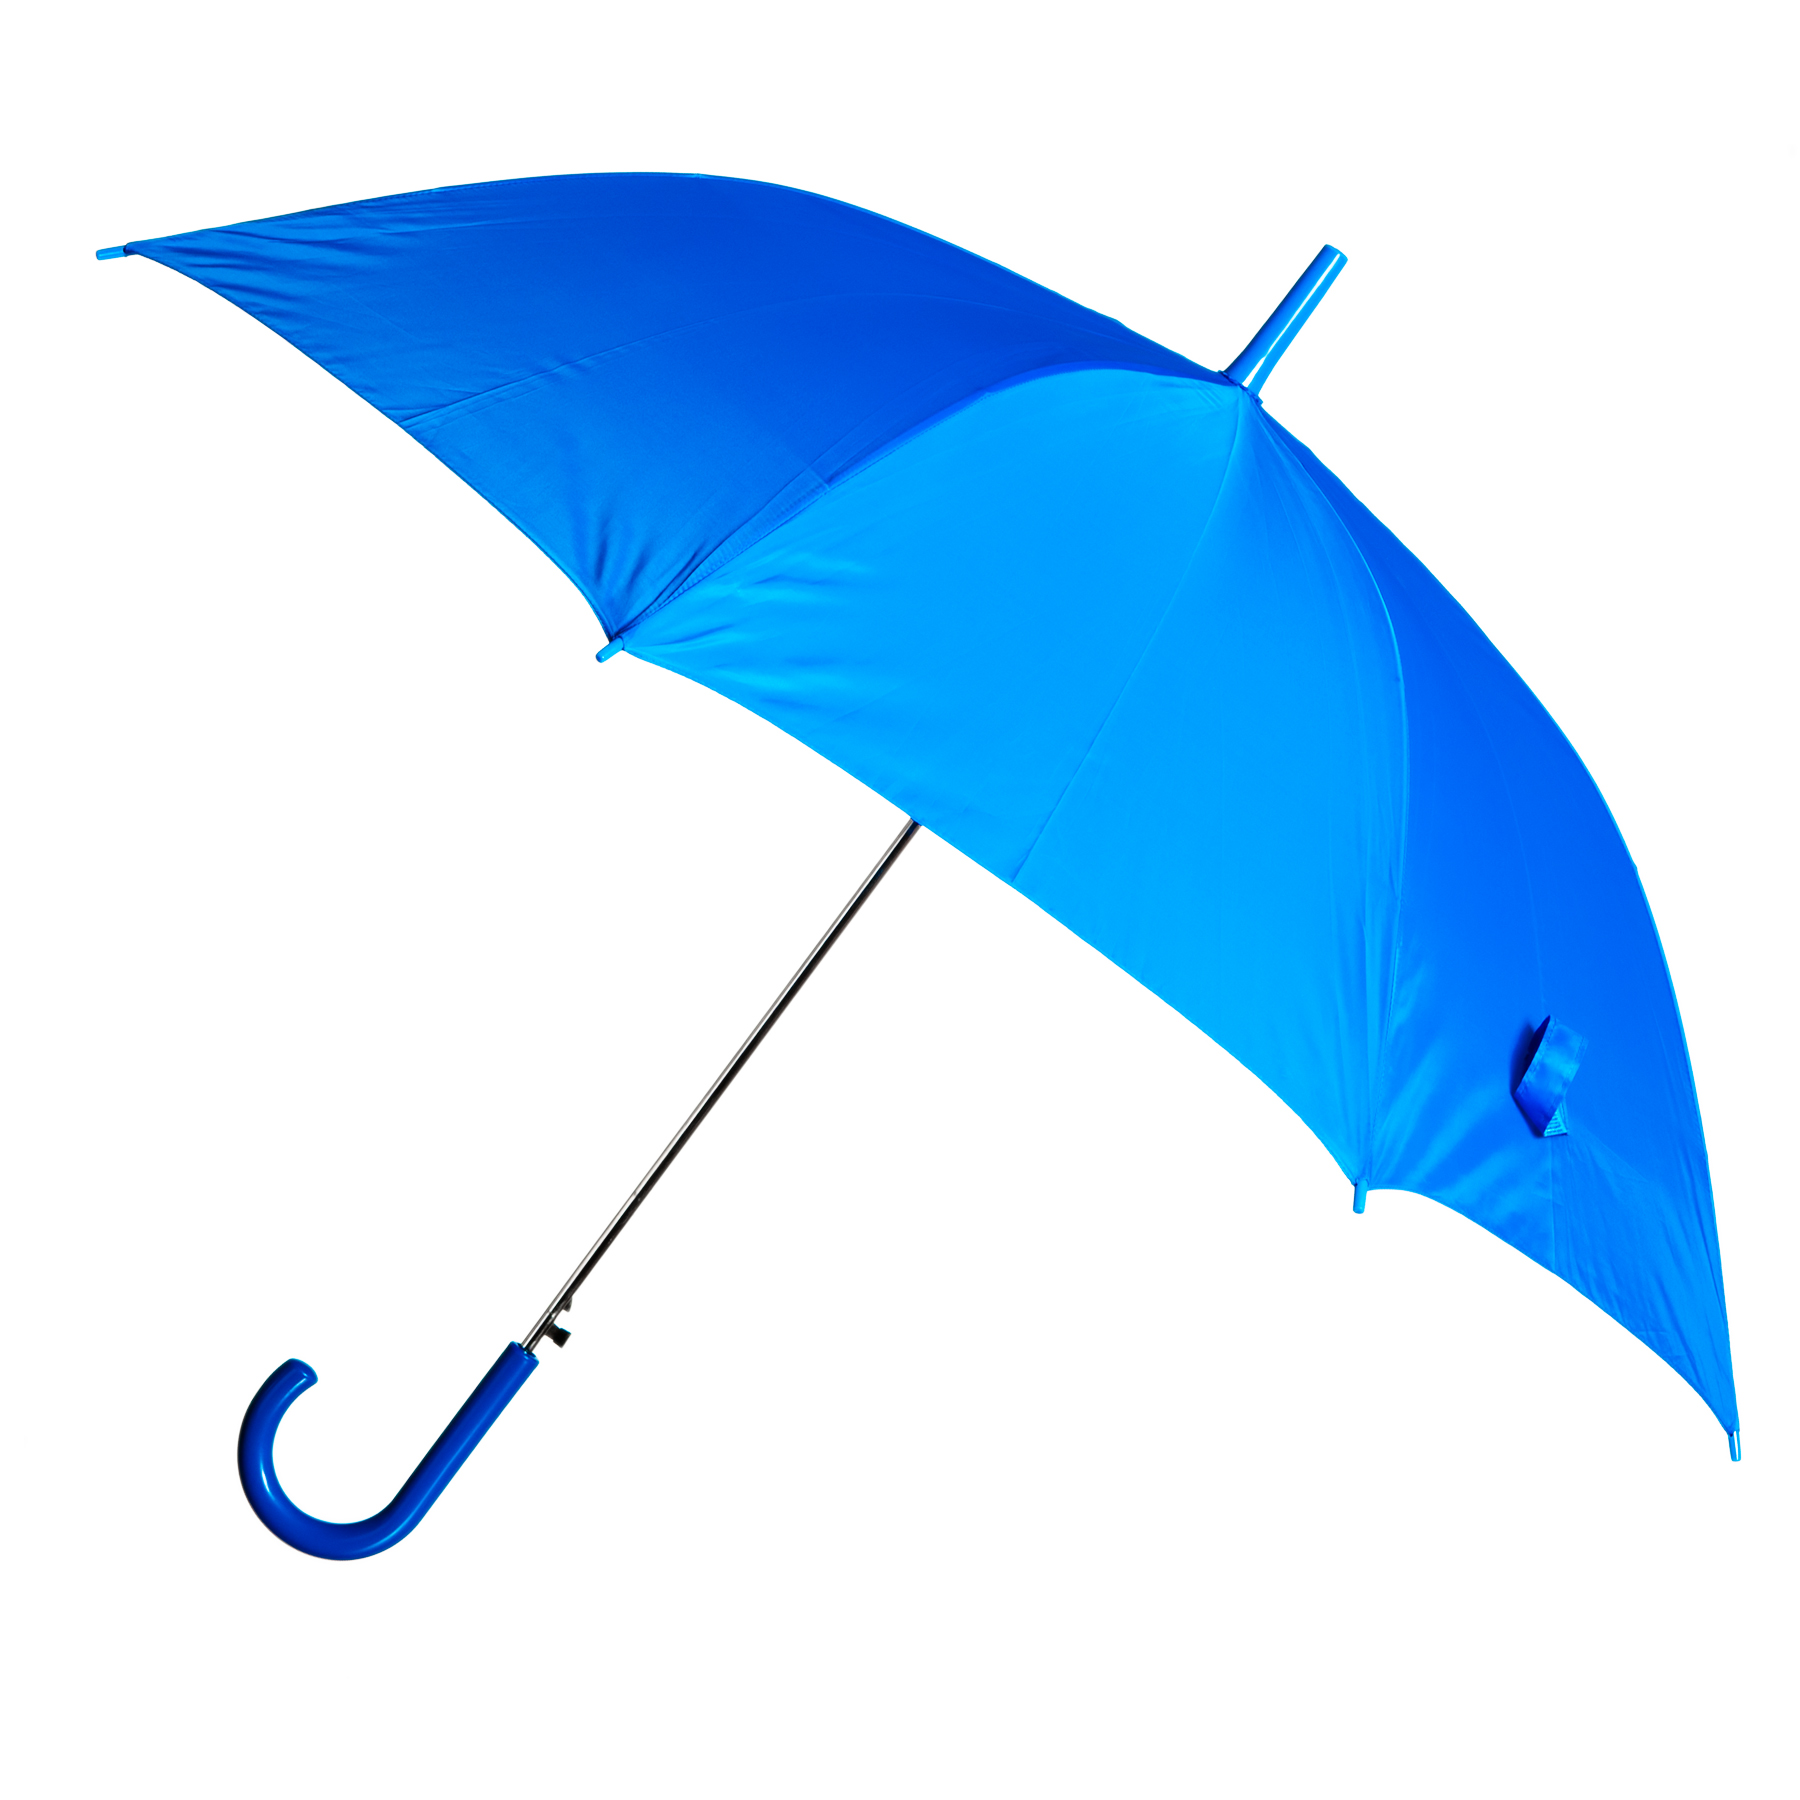 2b18c911665a7 Free photo: Blue umbrella - Rain, Safety, Season - Free Download ...